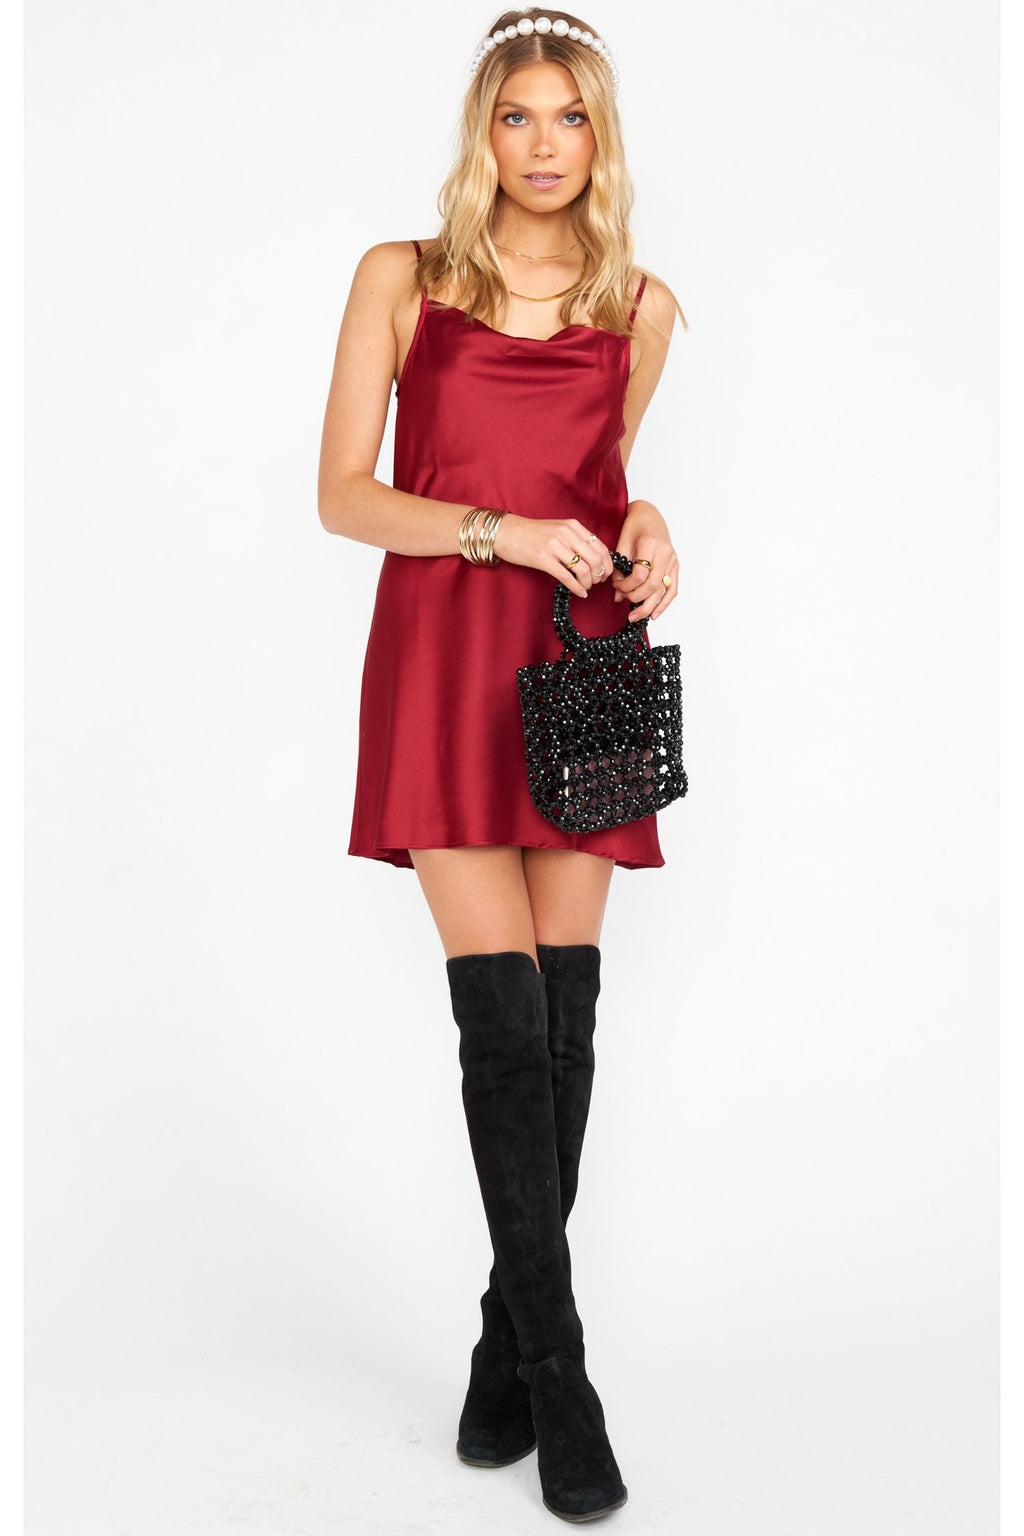 Sabine Ruby Slip Dress